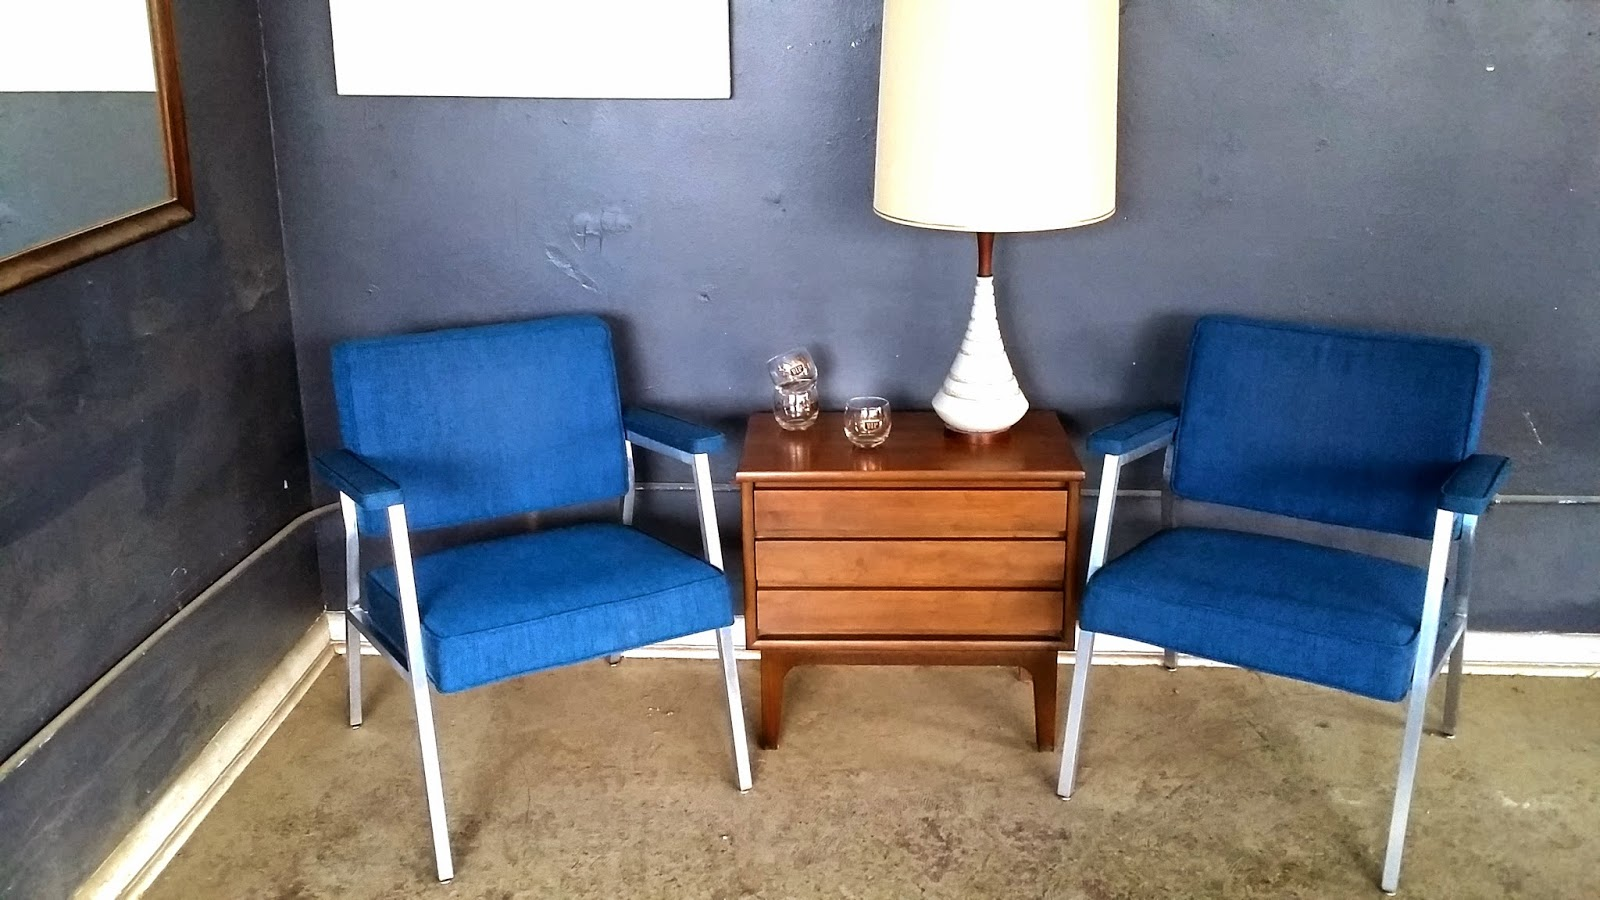 steelcase vintage chair for baby shower ground pair mid century chairs this is an awesome of both are in excellent condition and a beautiful blue upholstery very comfortable they would make